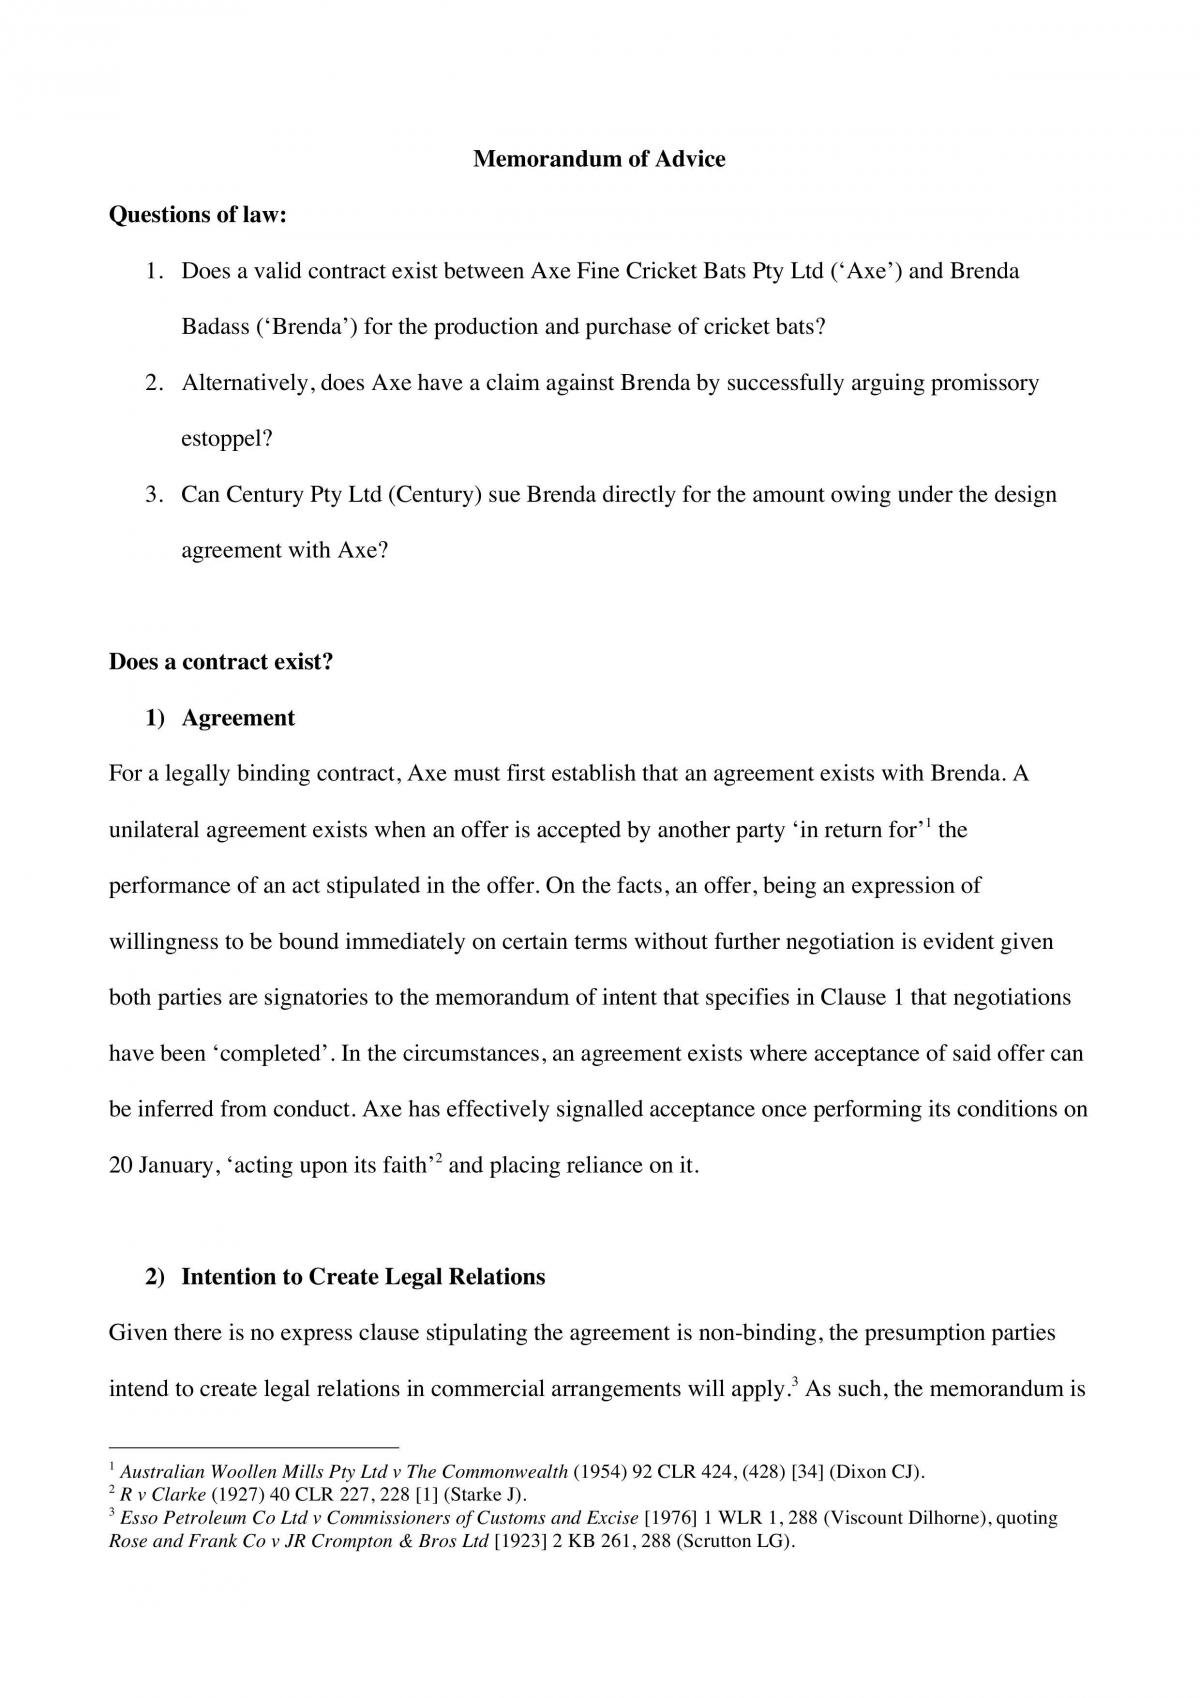 LAWS1015 Contracts Assignment  - Page 1